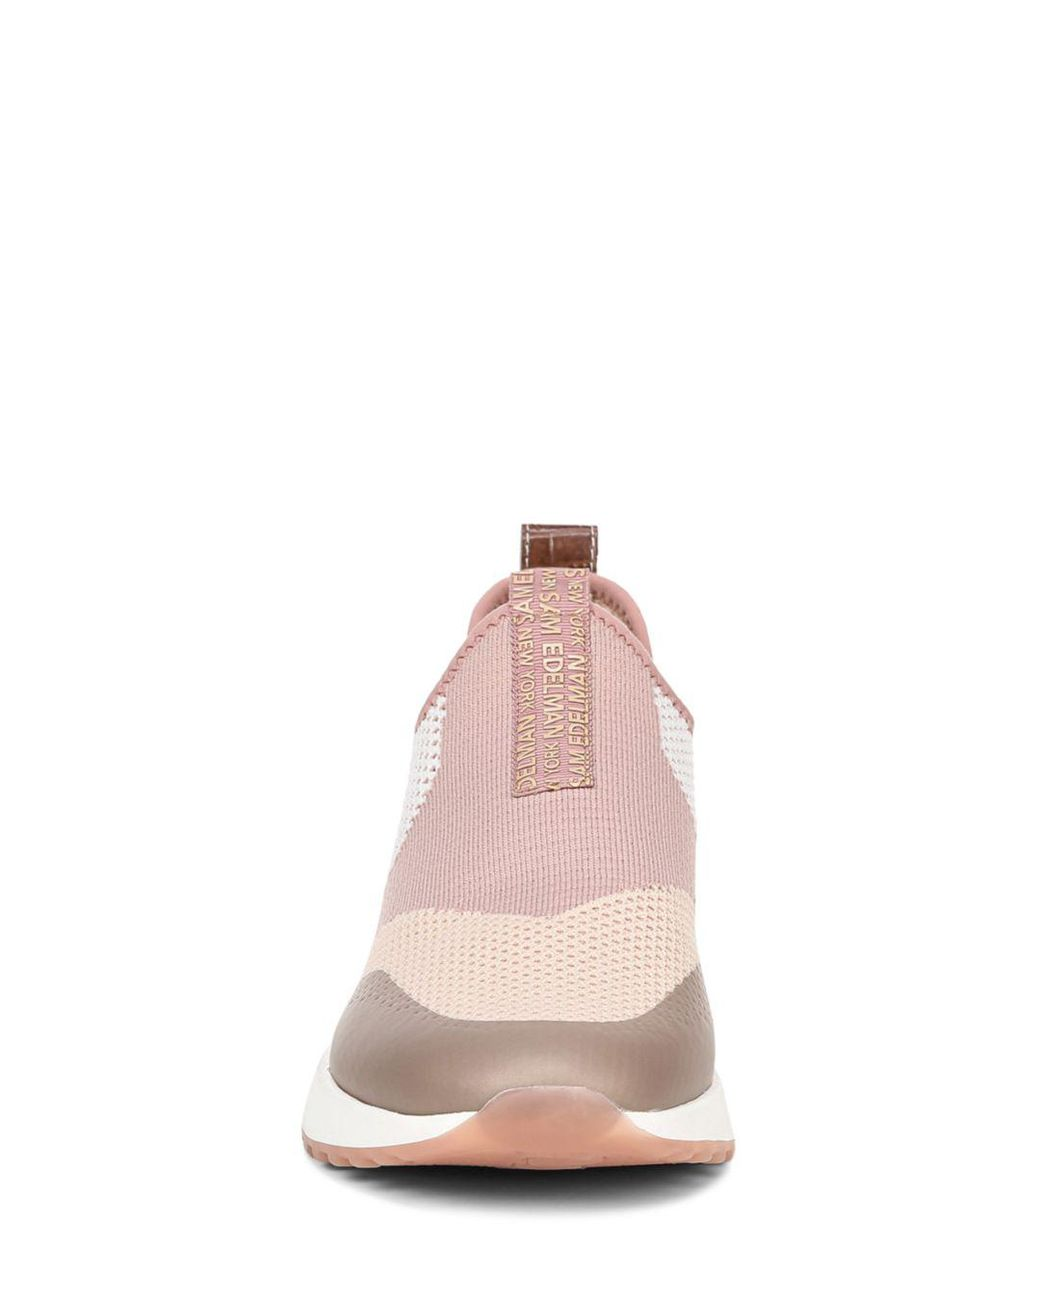 552aa9678 Sam Edelman Women s Dania Knit Slip On Sneakers in Pink - Save 58% - Lyst